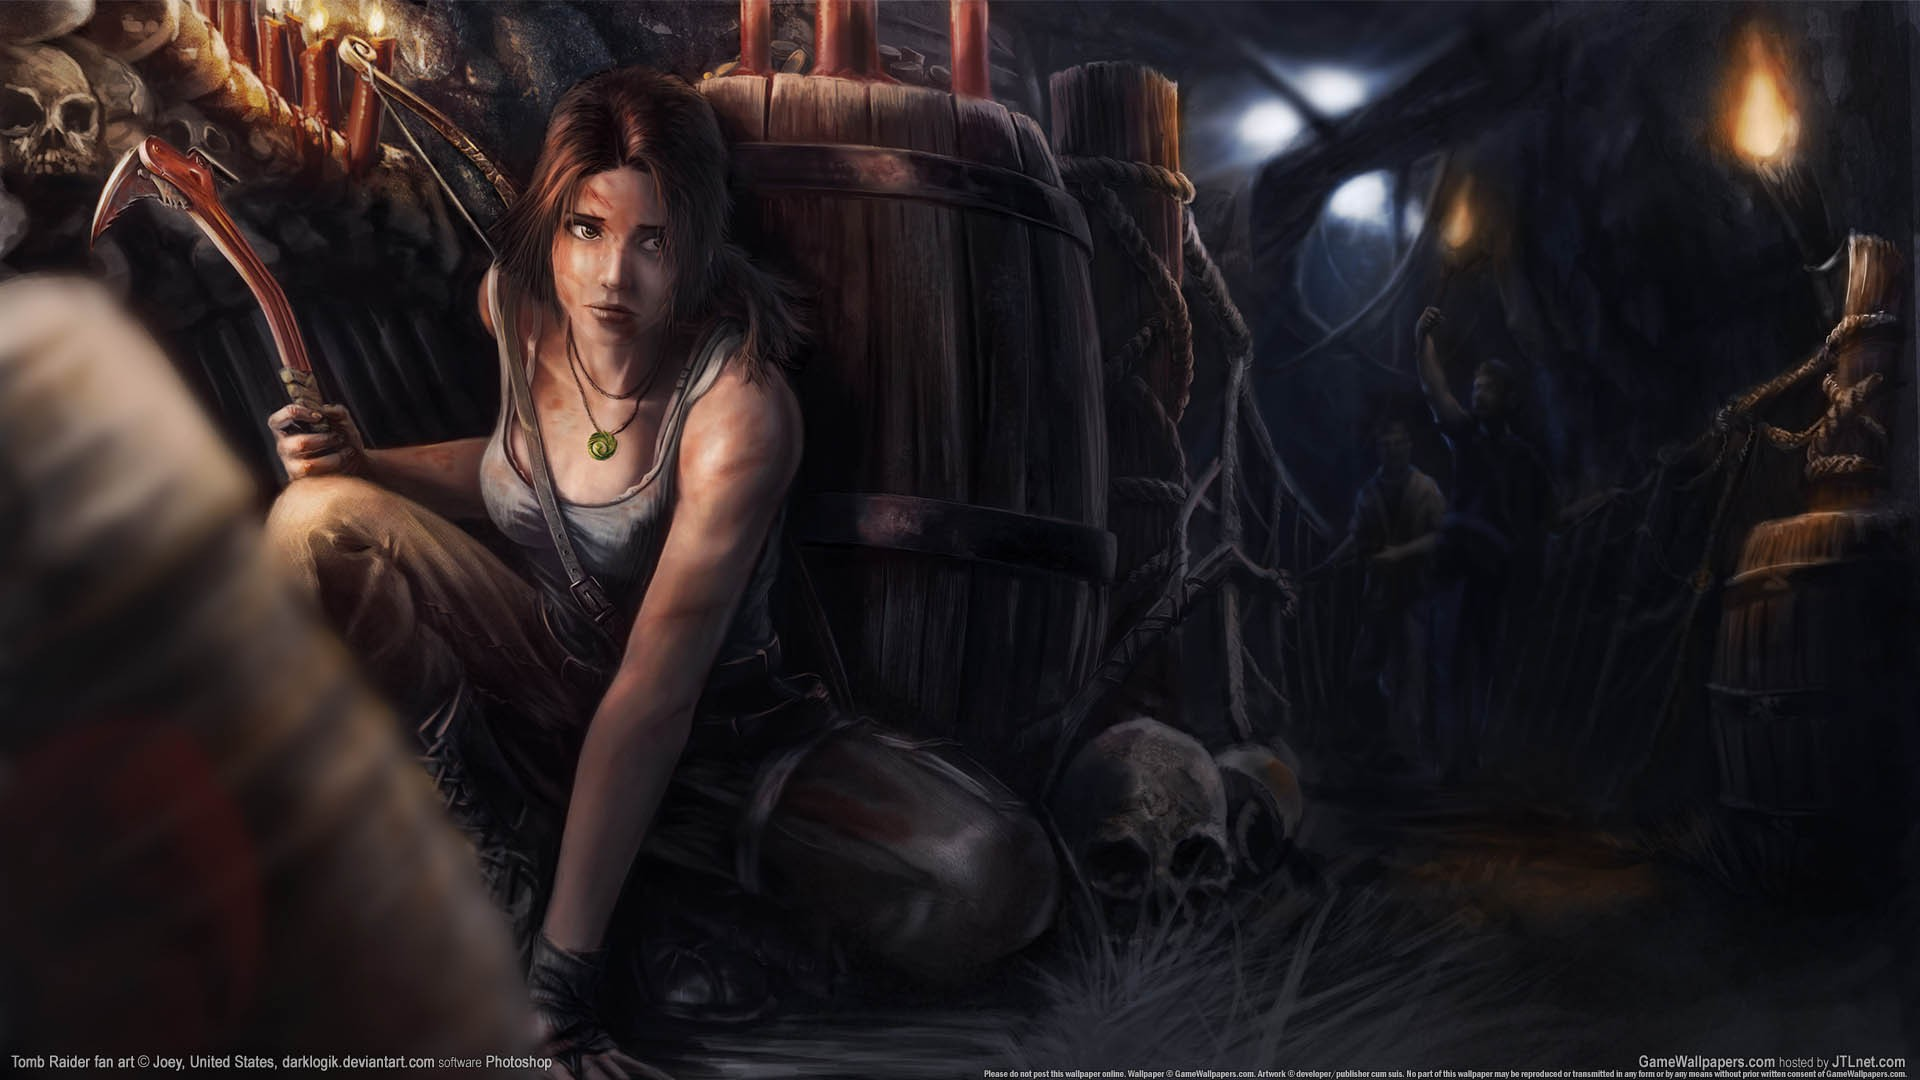 General 1920x1080 video games video game characters video game girls Tomb Raider Lara Croft fan art artwork